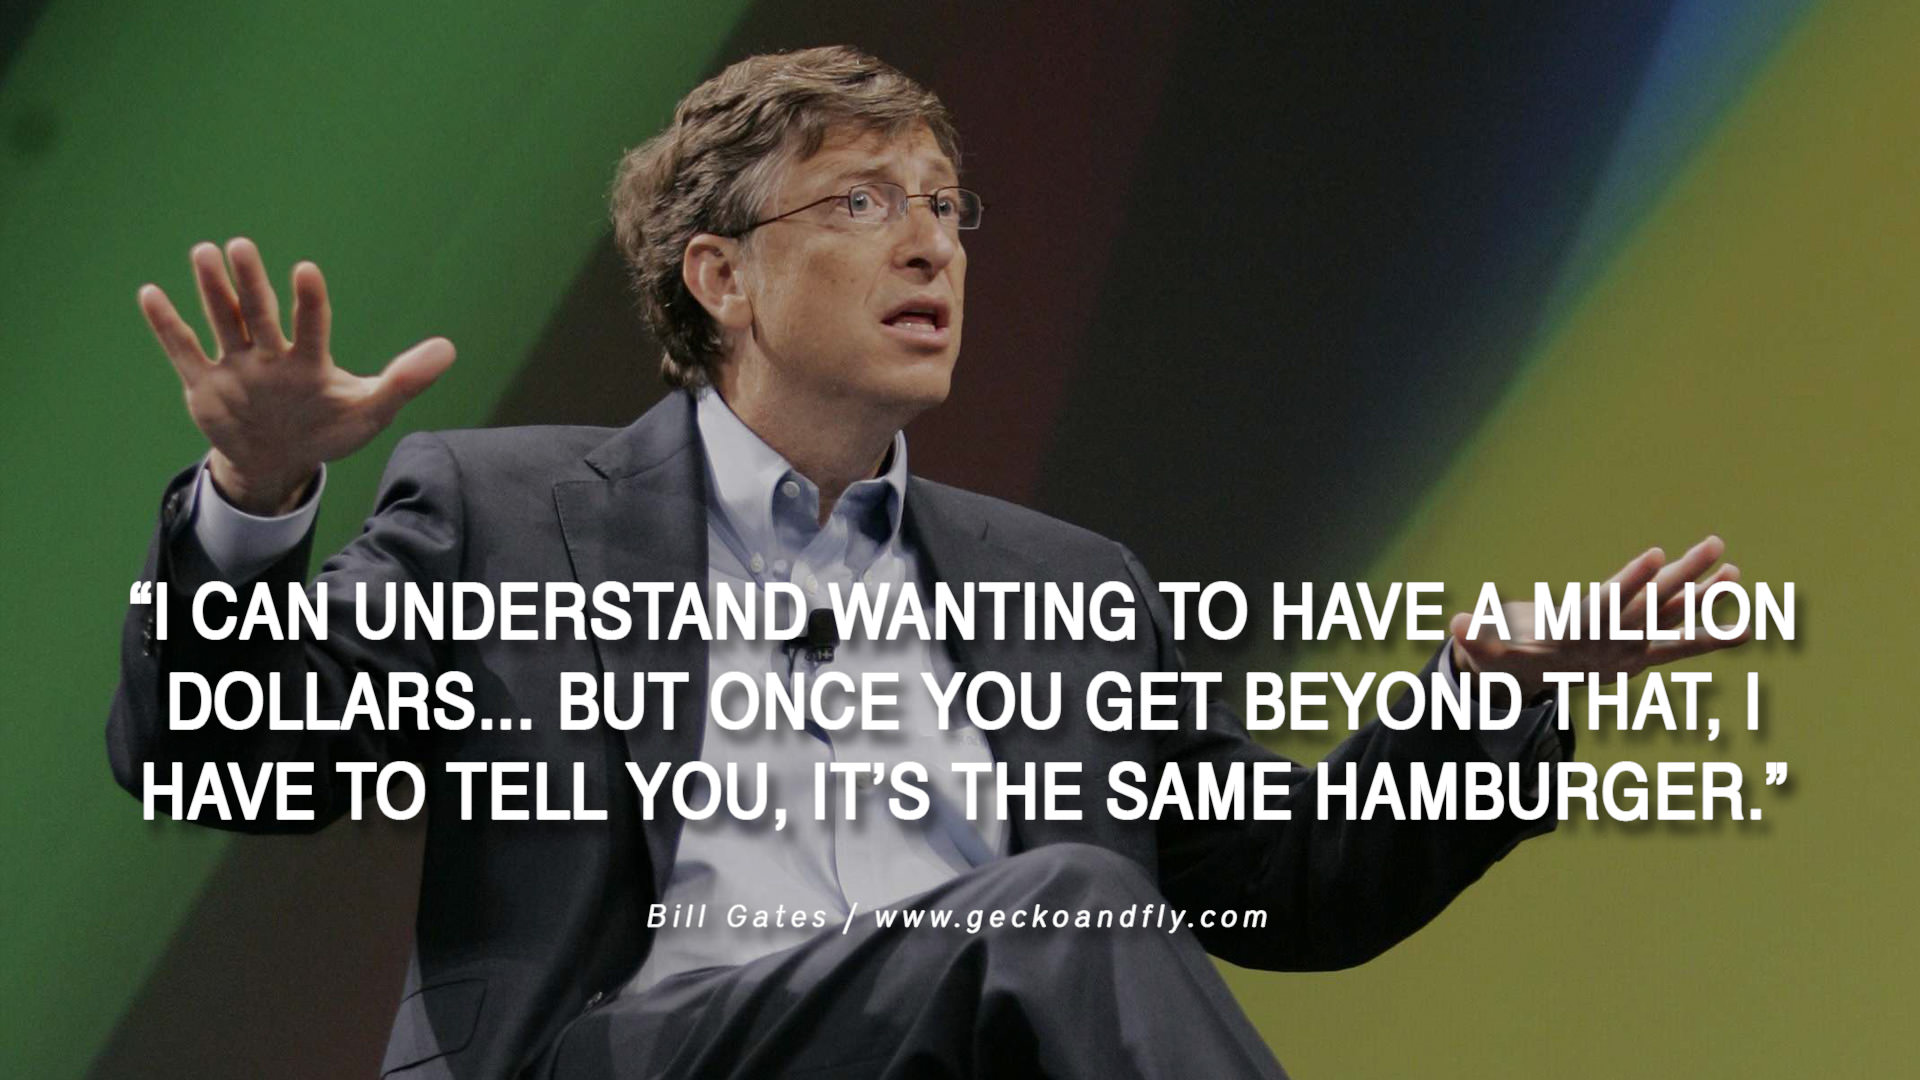 leadership qualities of bill gates essays